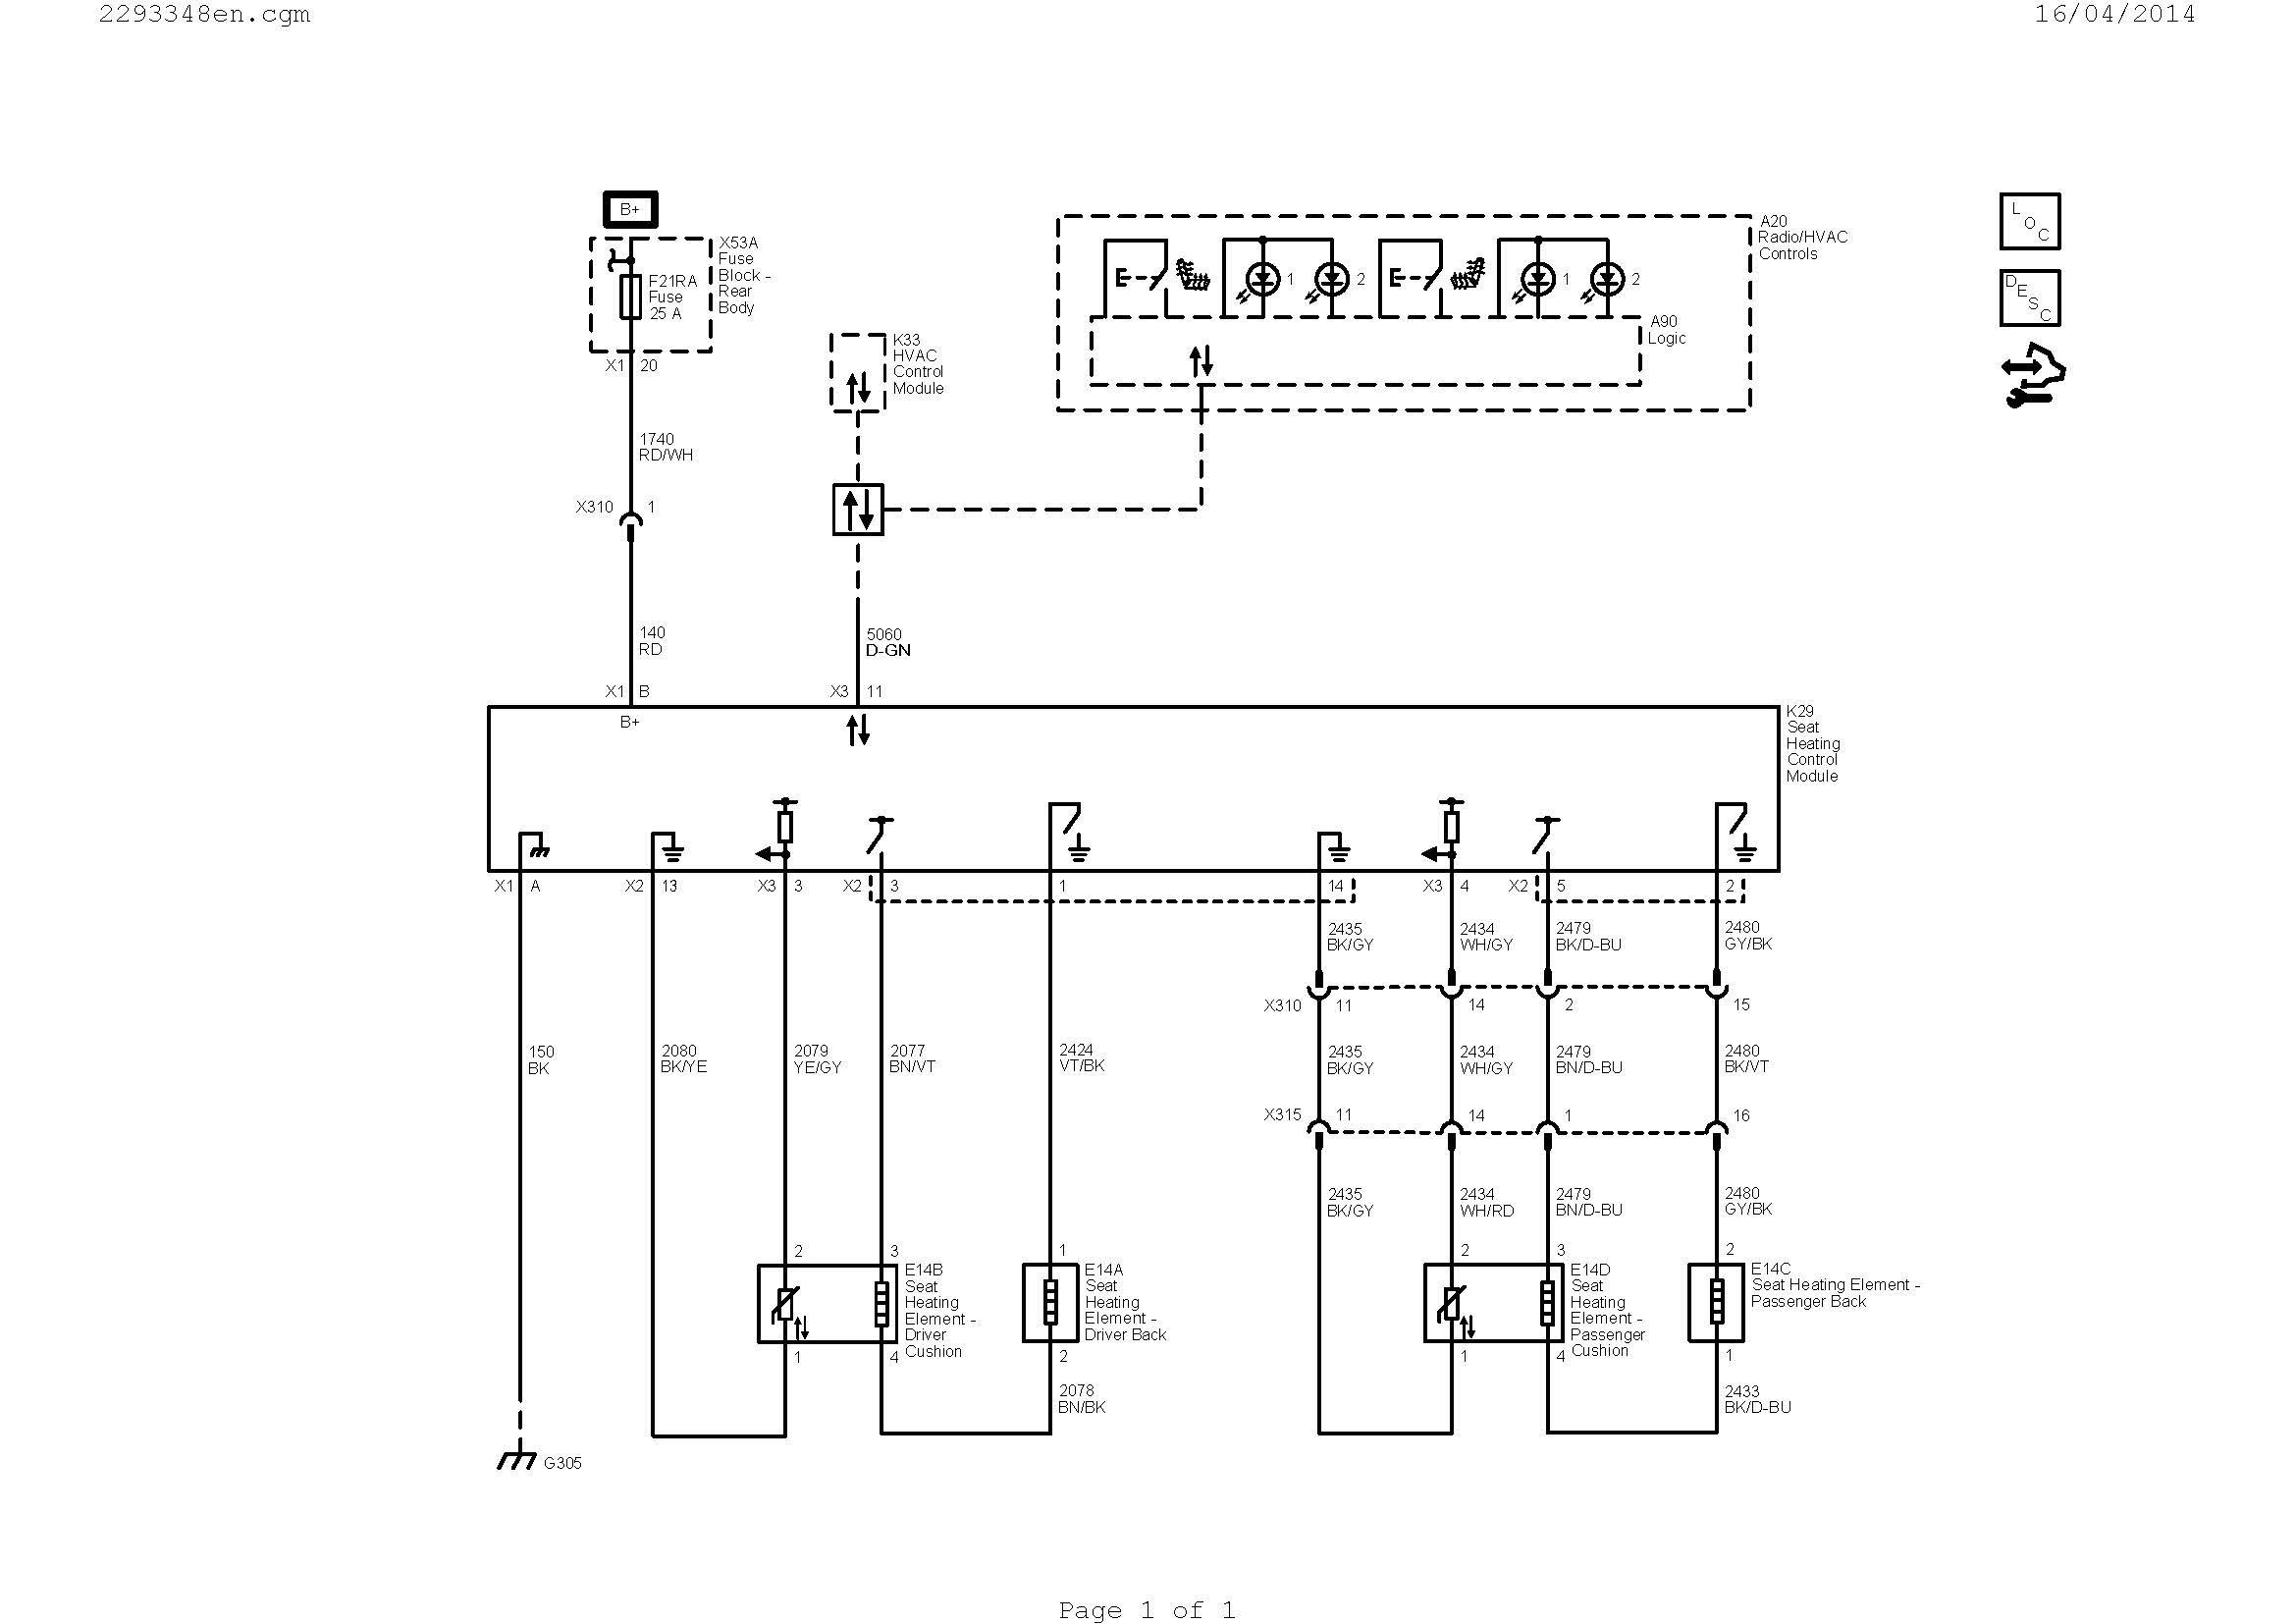 electrical panel wiring diagram Download-Wiring A Ac thermostat Diagram New Wiring Diagram Ac Valid Hvac Panel Wiring Diagram New 6-e